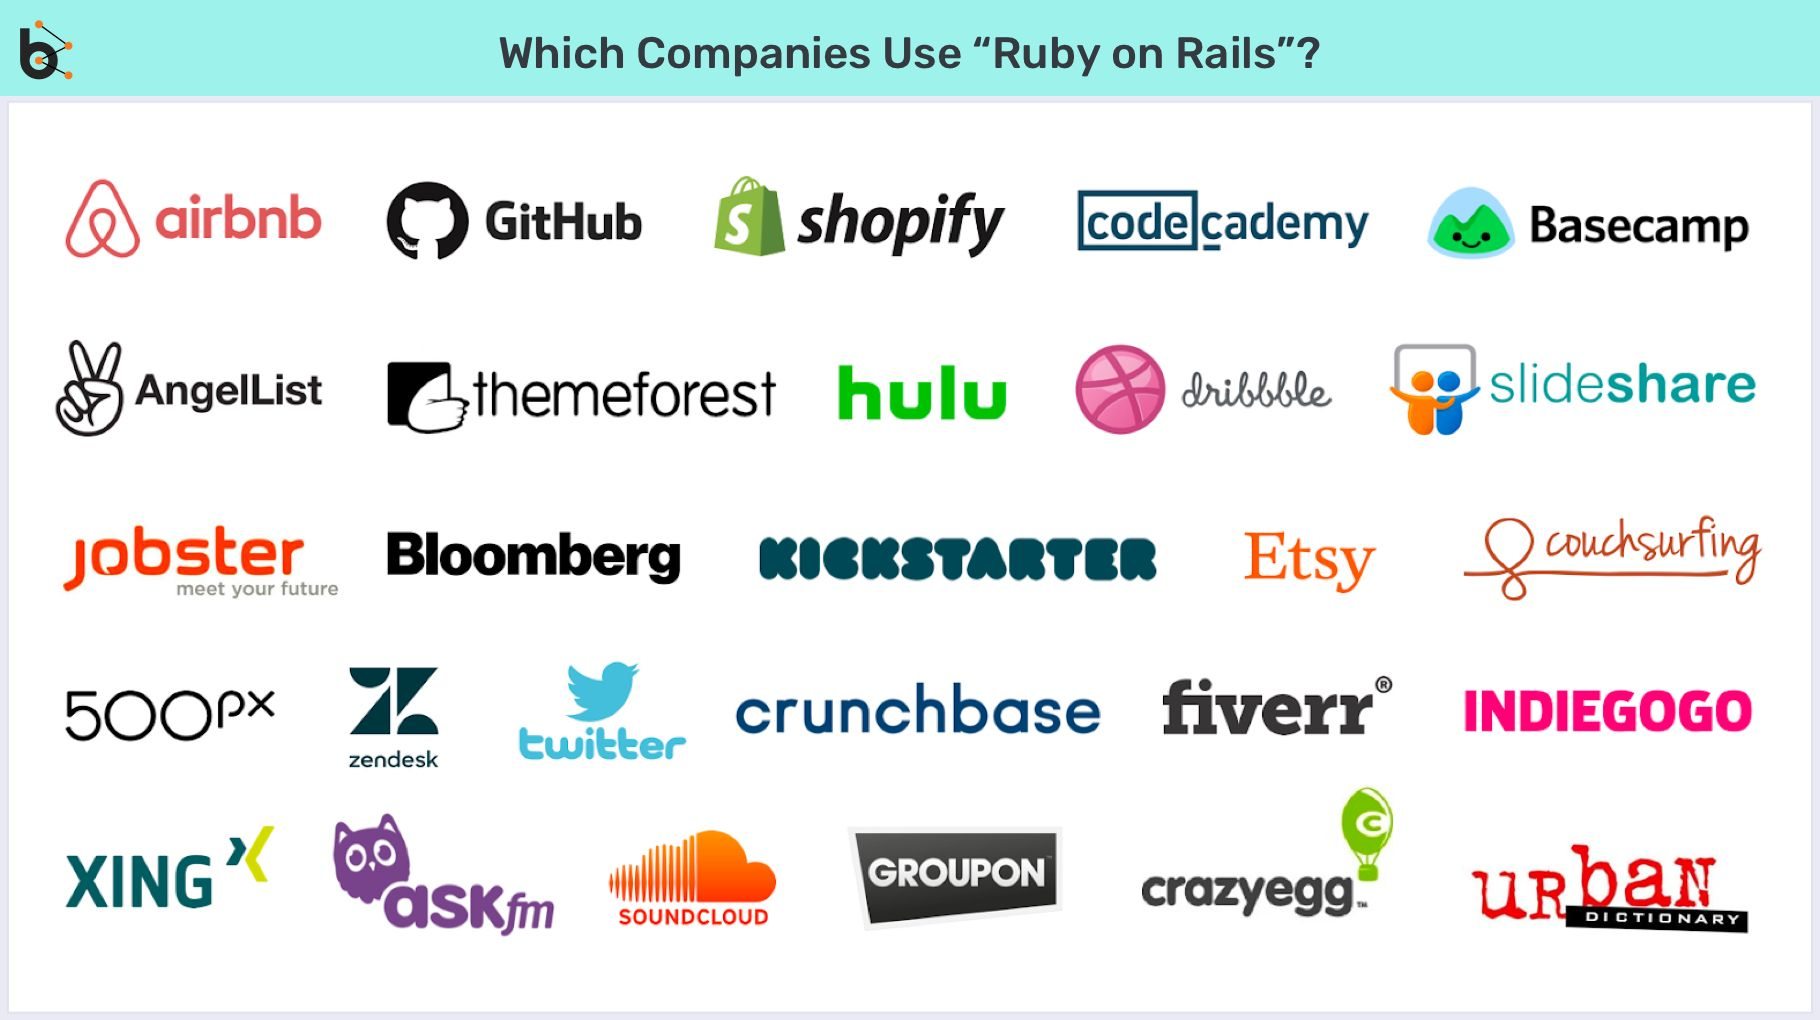 7 reasons why startups should use Ruby on Rails